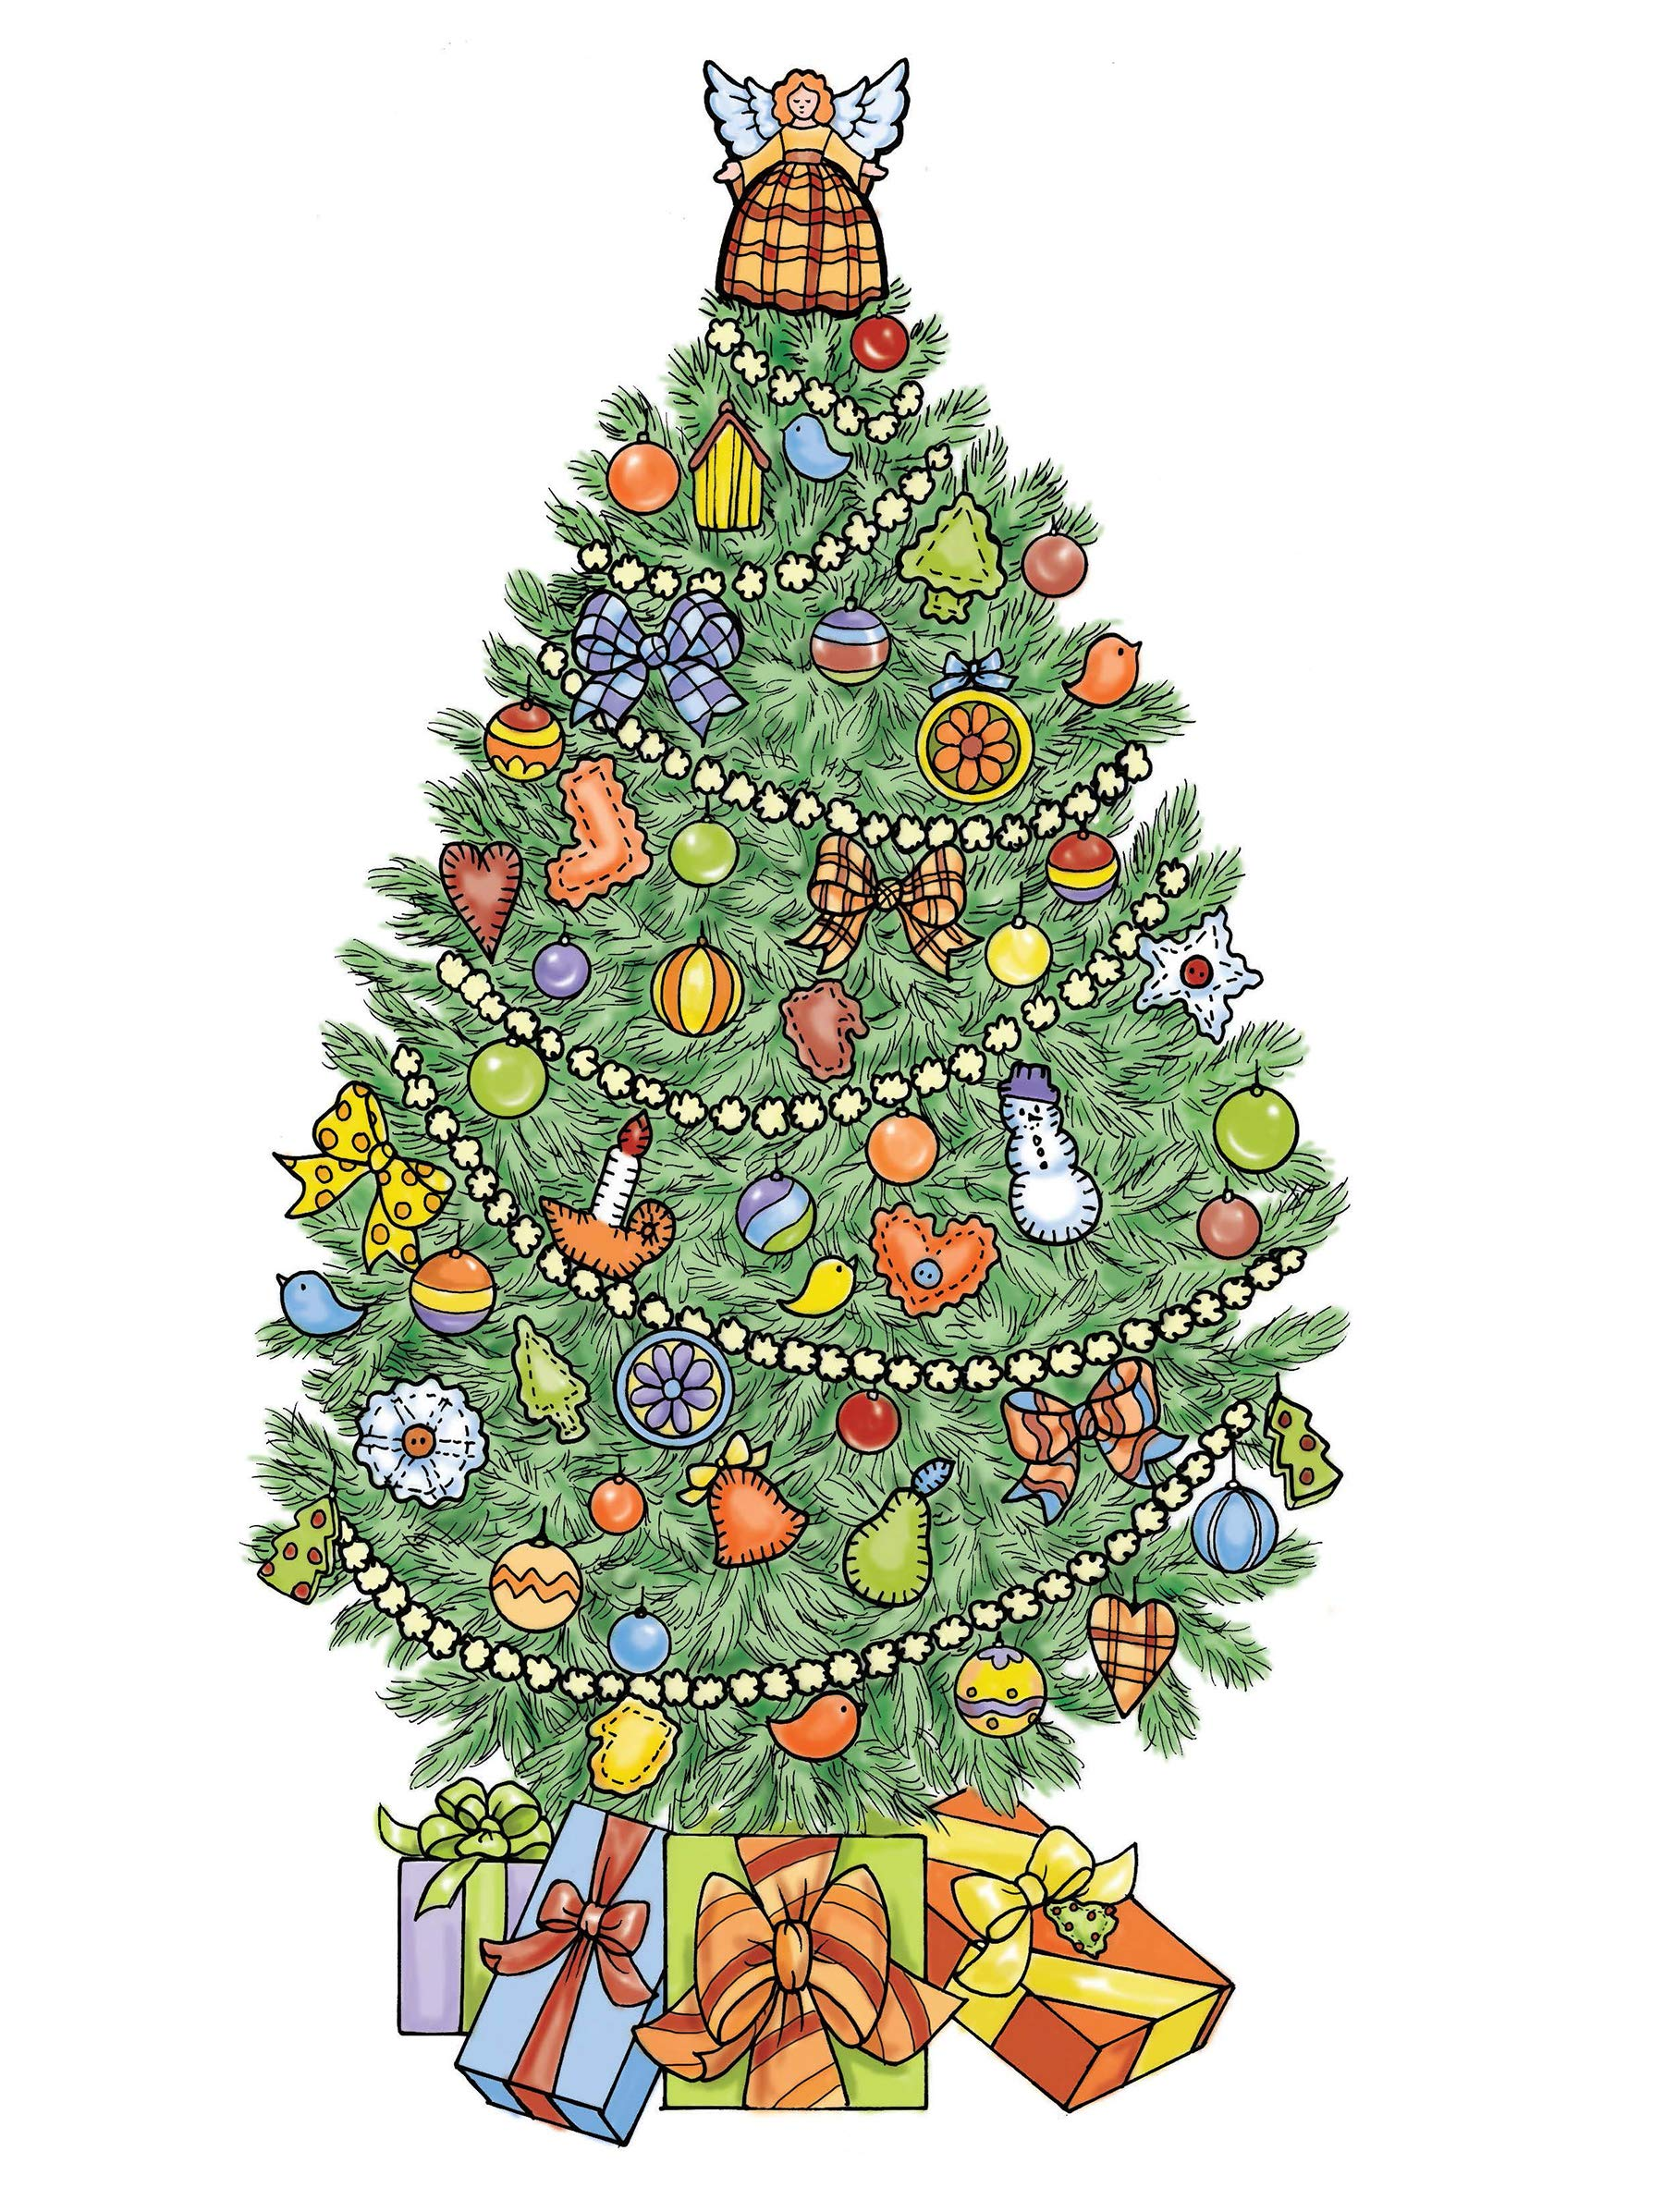 Creative Haven Christmas Trees Coloring Book Creative Haven Coloring Books Amazon Co Uk Lanza Barbara 0800759803903 Books